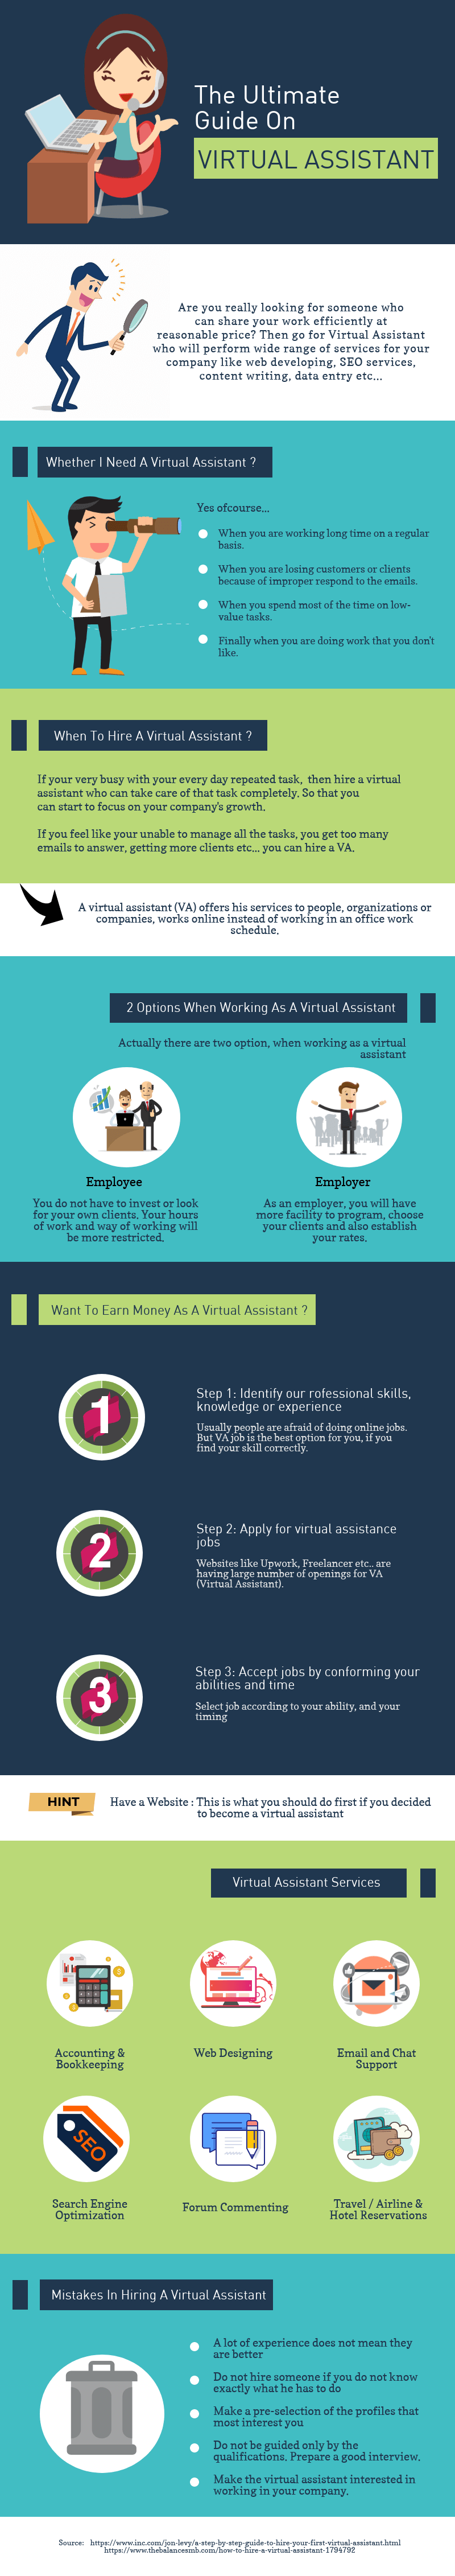 virtual-assistant-infographic